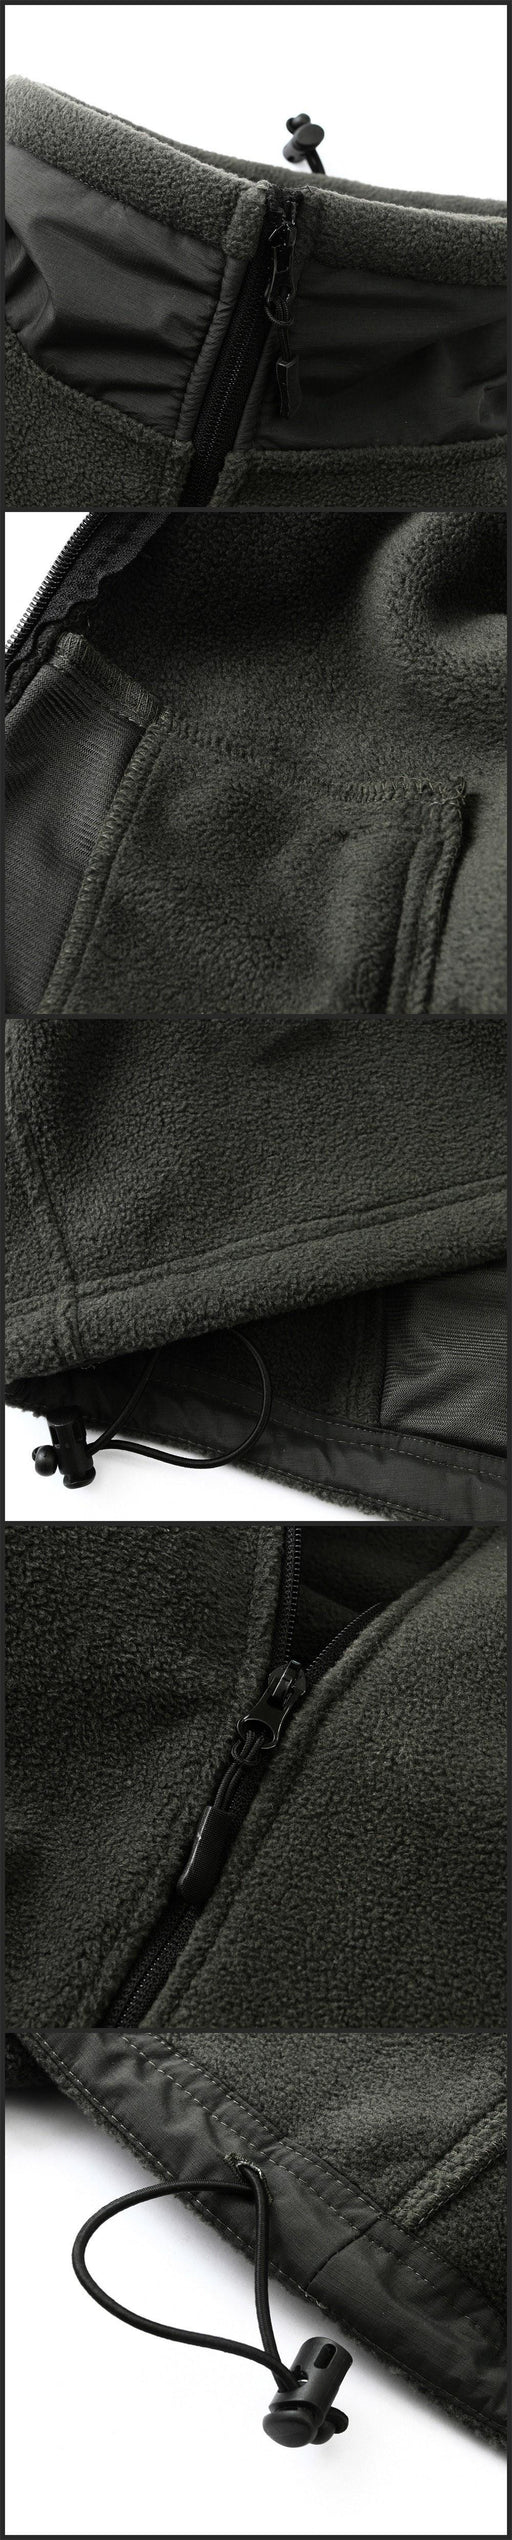 Men's Fleece Warm Military Coats Outerwear with Multi Pockets - SolaceConnect.com